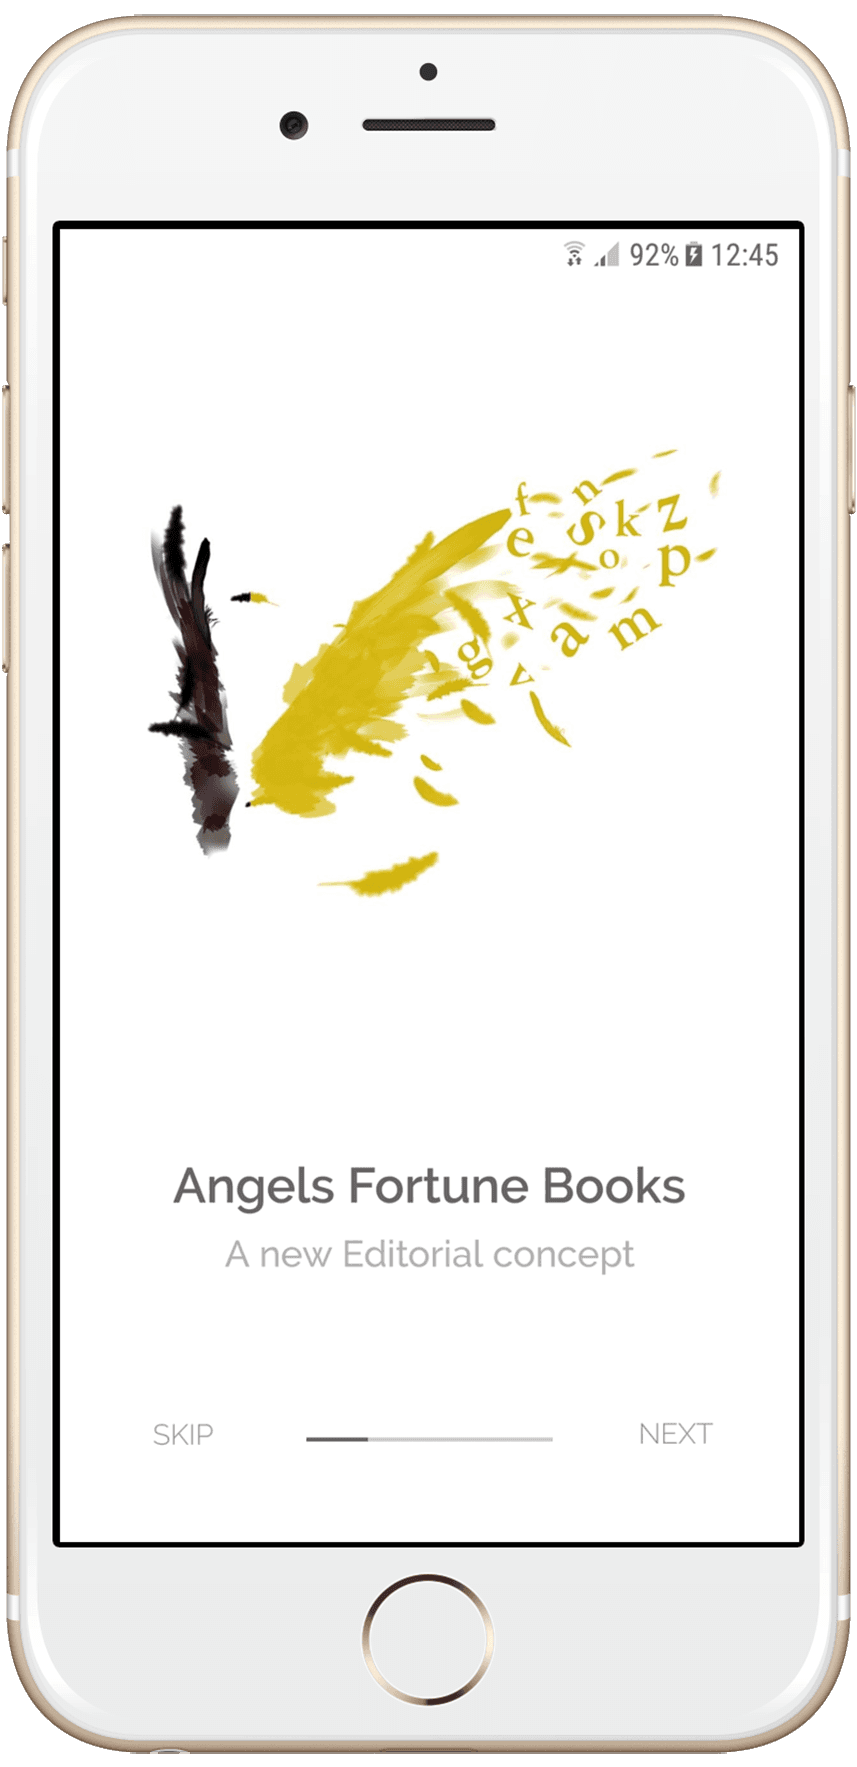 ANGELS FORTUNE BOOKS